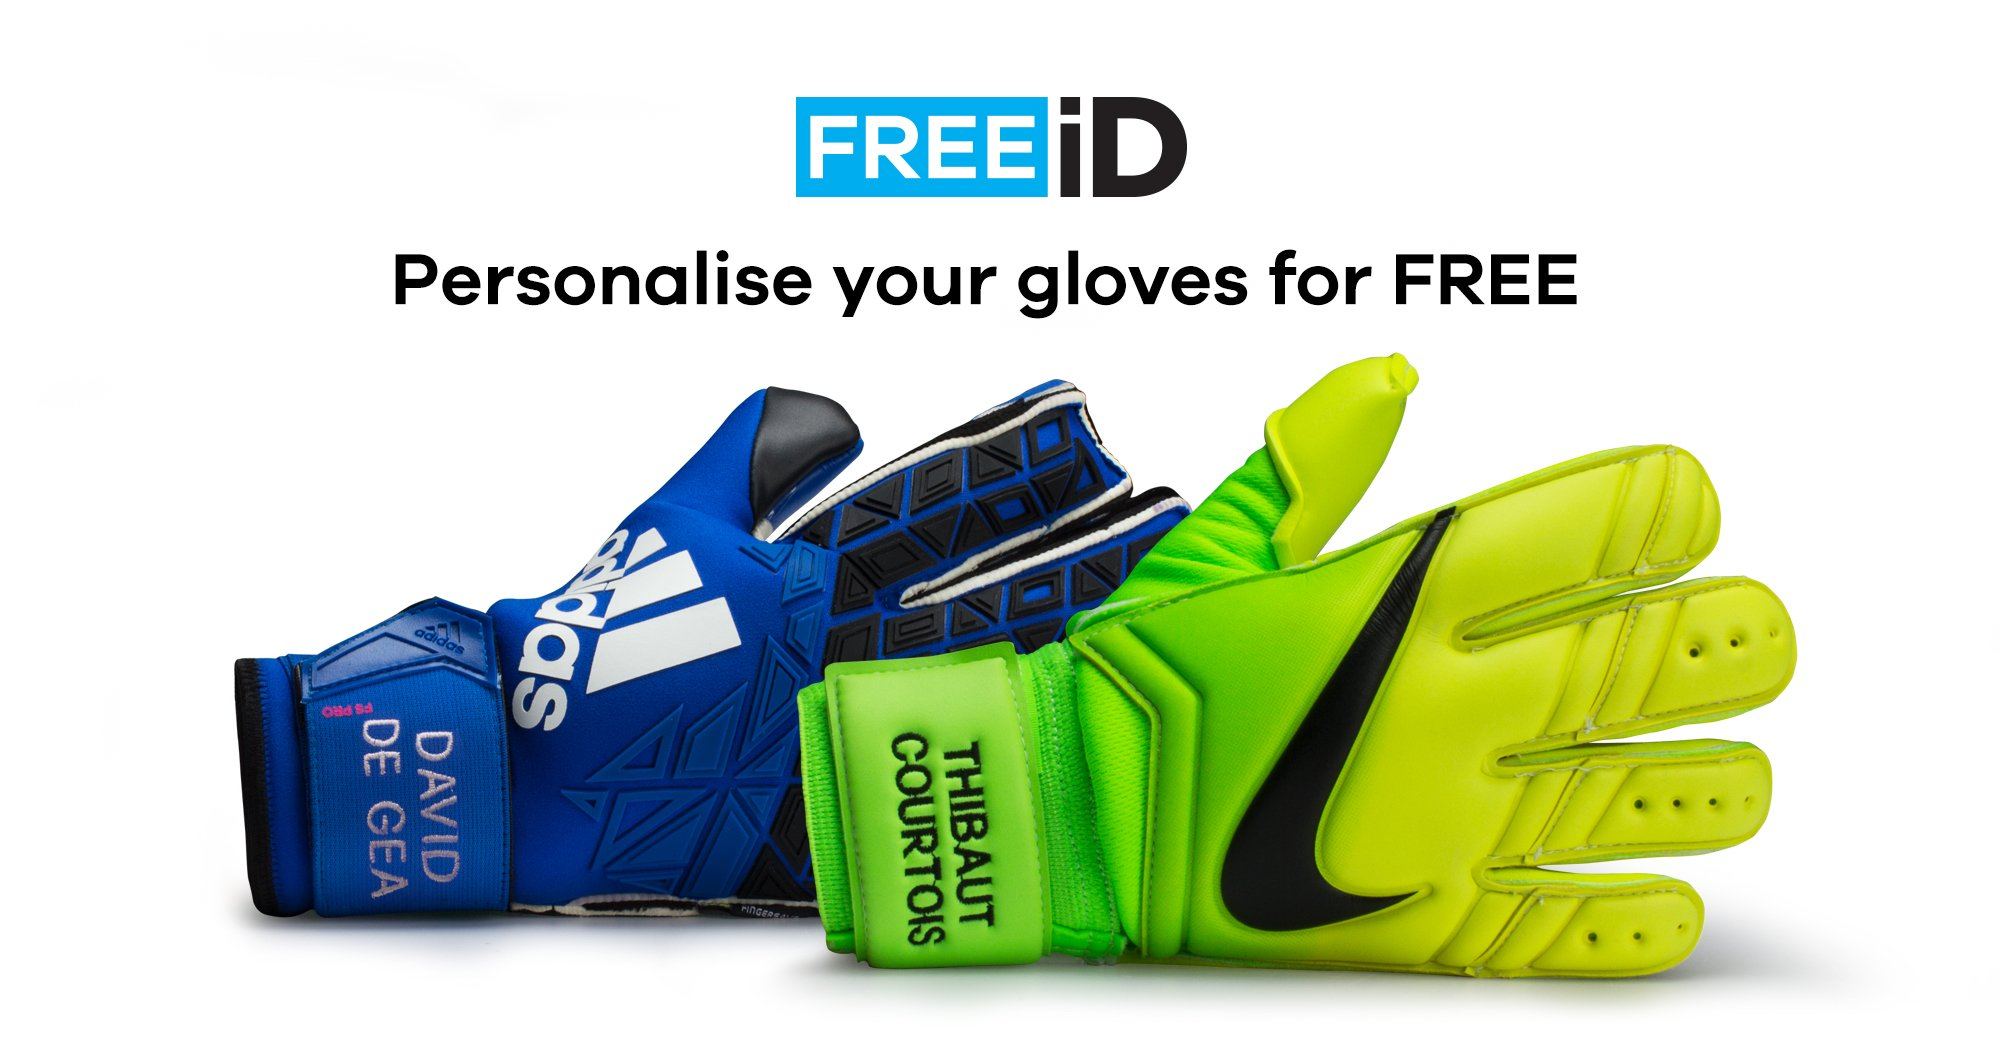 FREE iD - FREE Glove Personalisation 8c8548770145